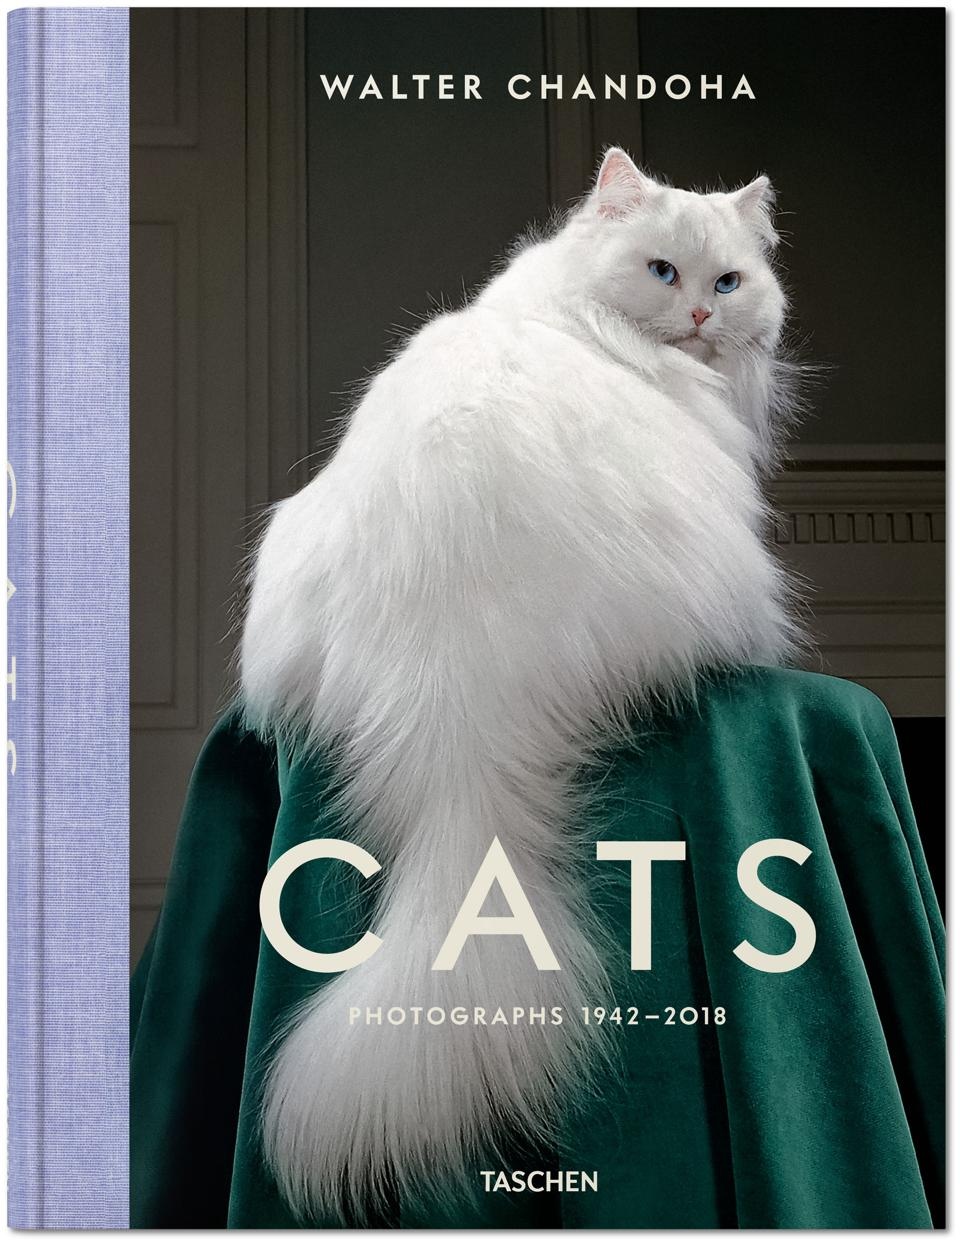 ″Cats: Photographs 1942-2018″